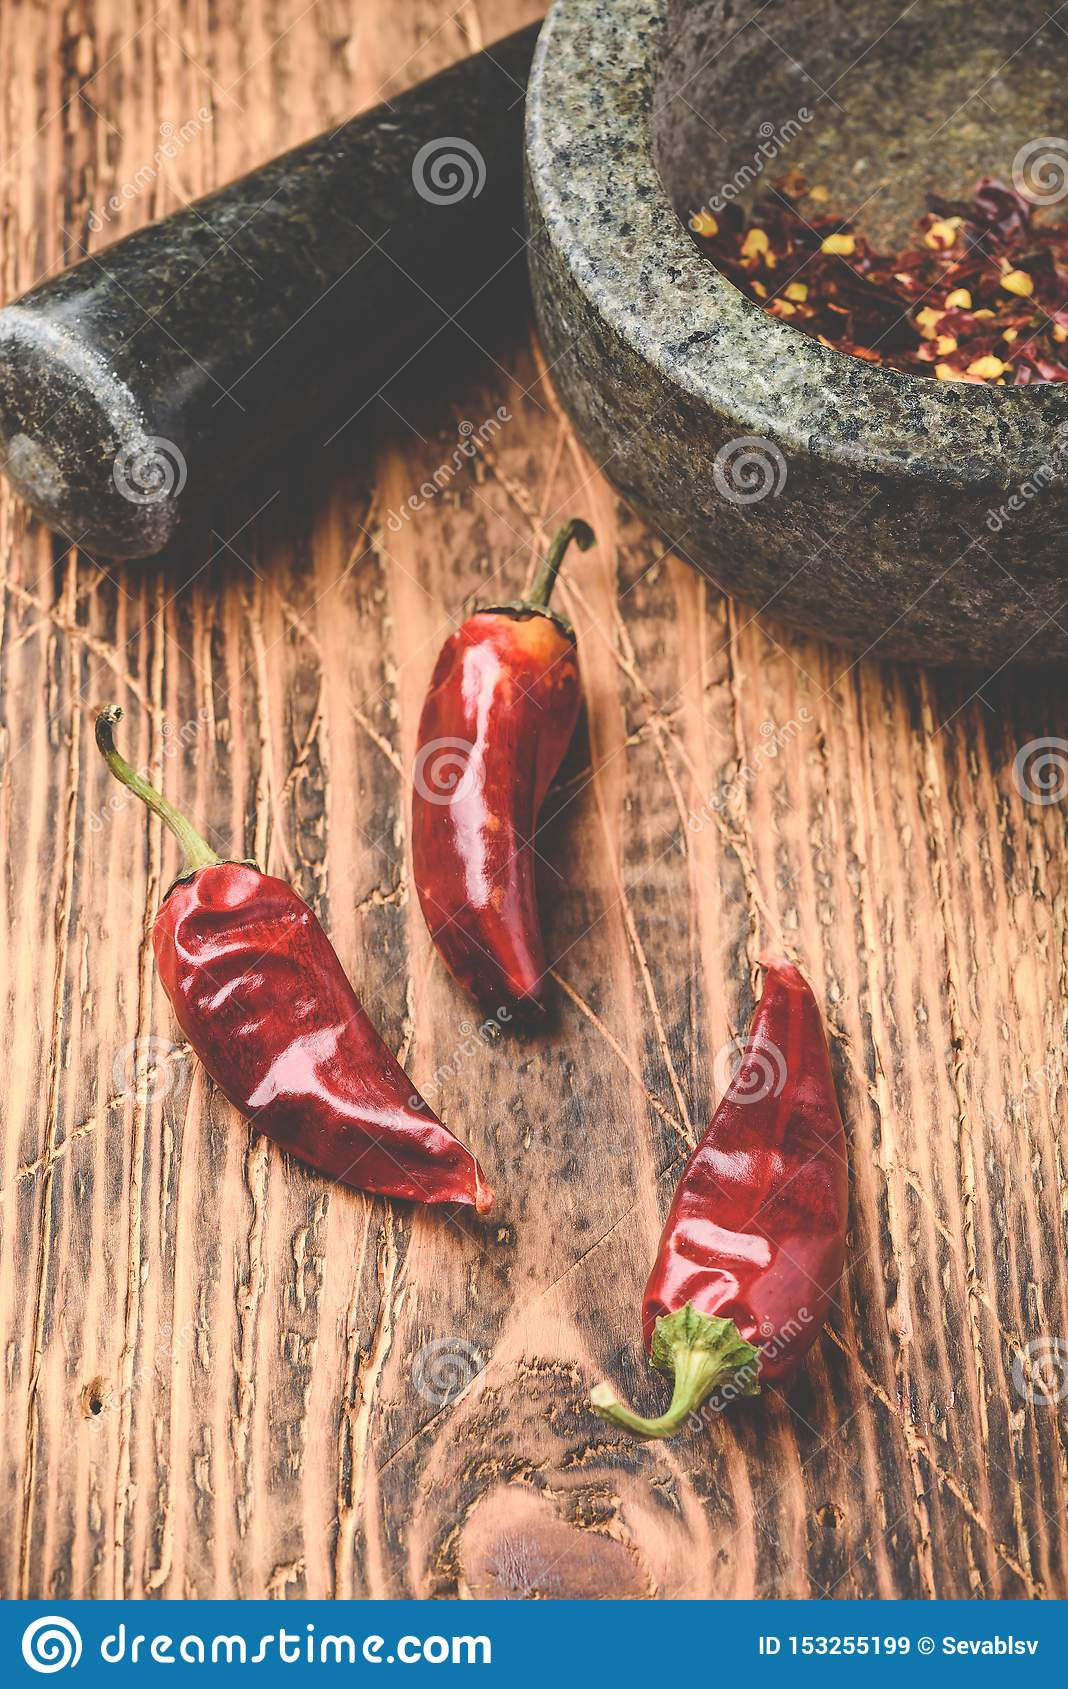 Dried red chili peppers on wooden surface with mortar and pestle